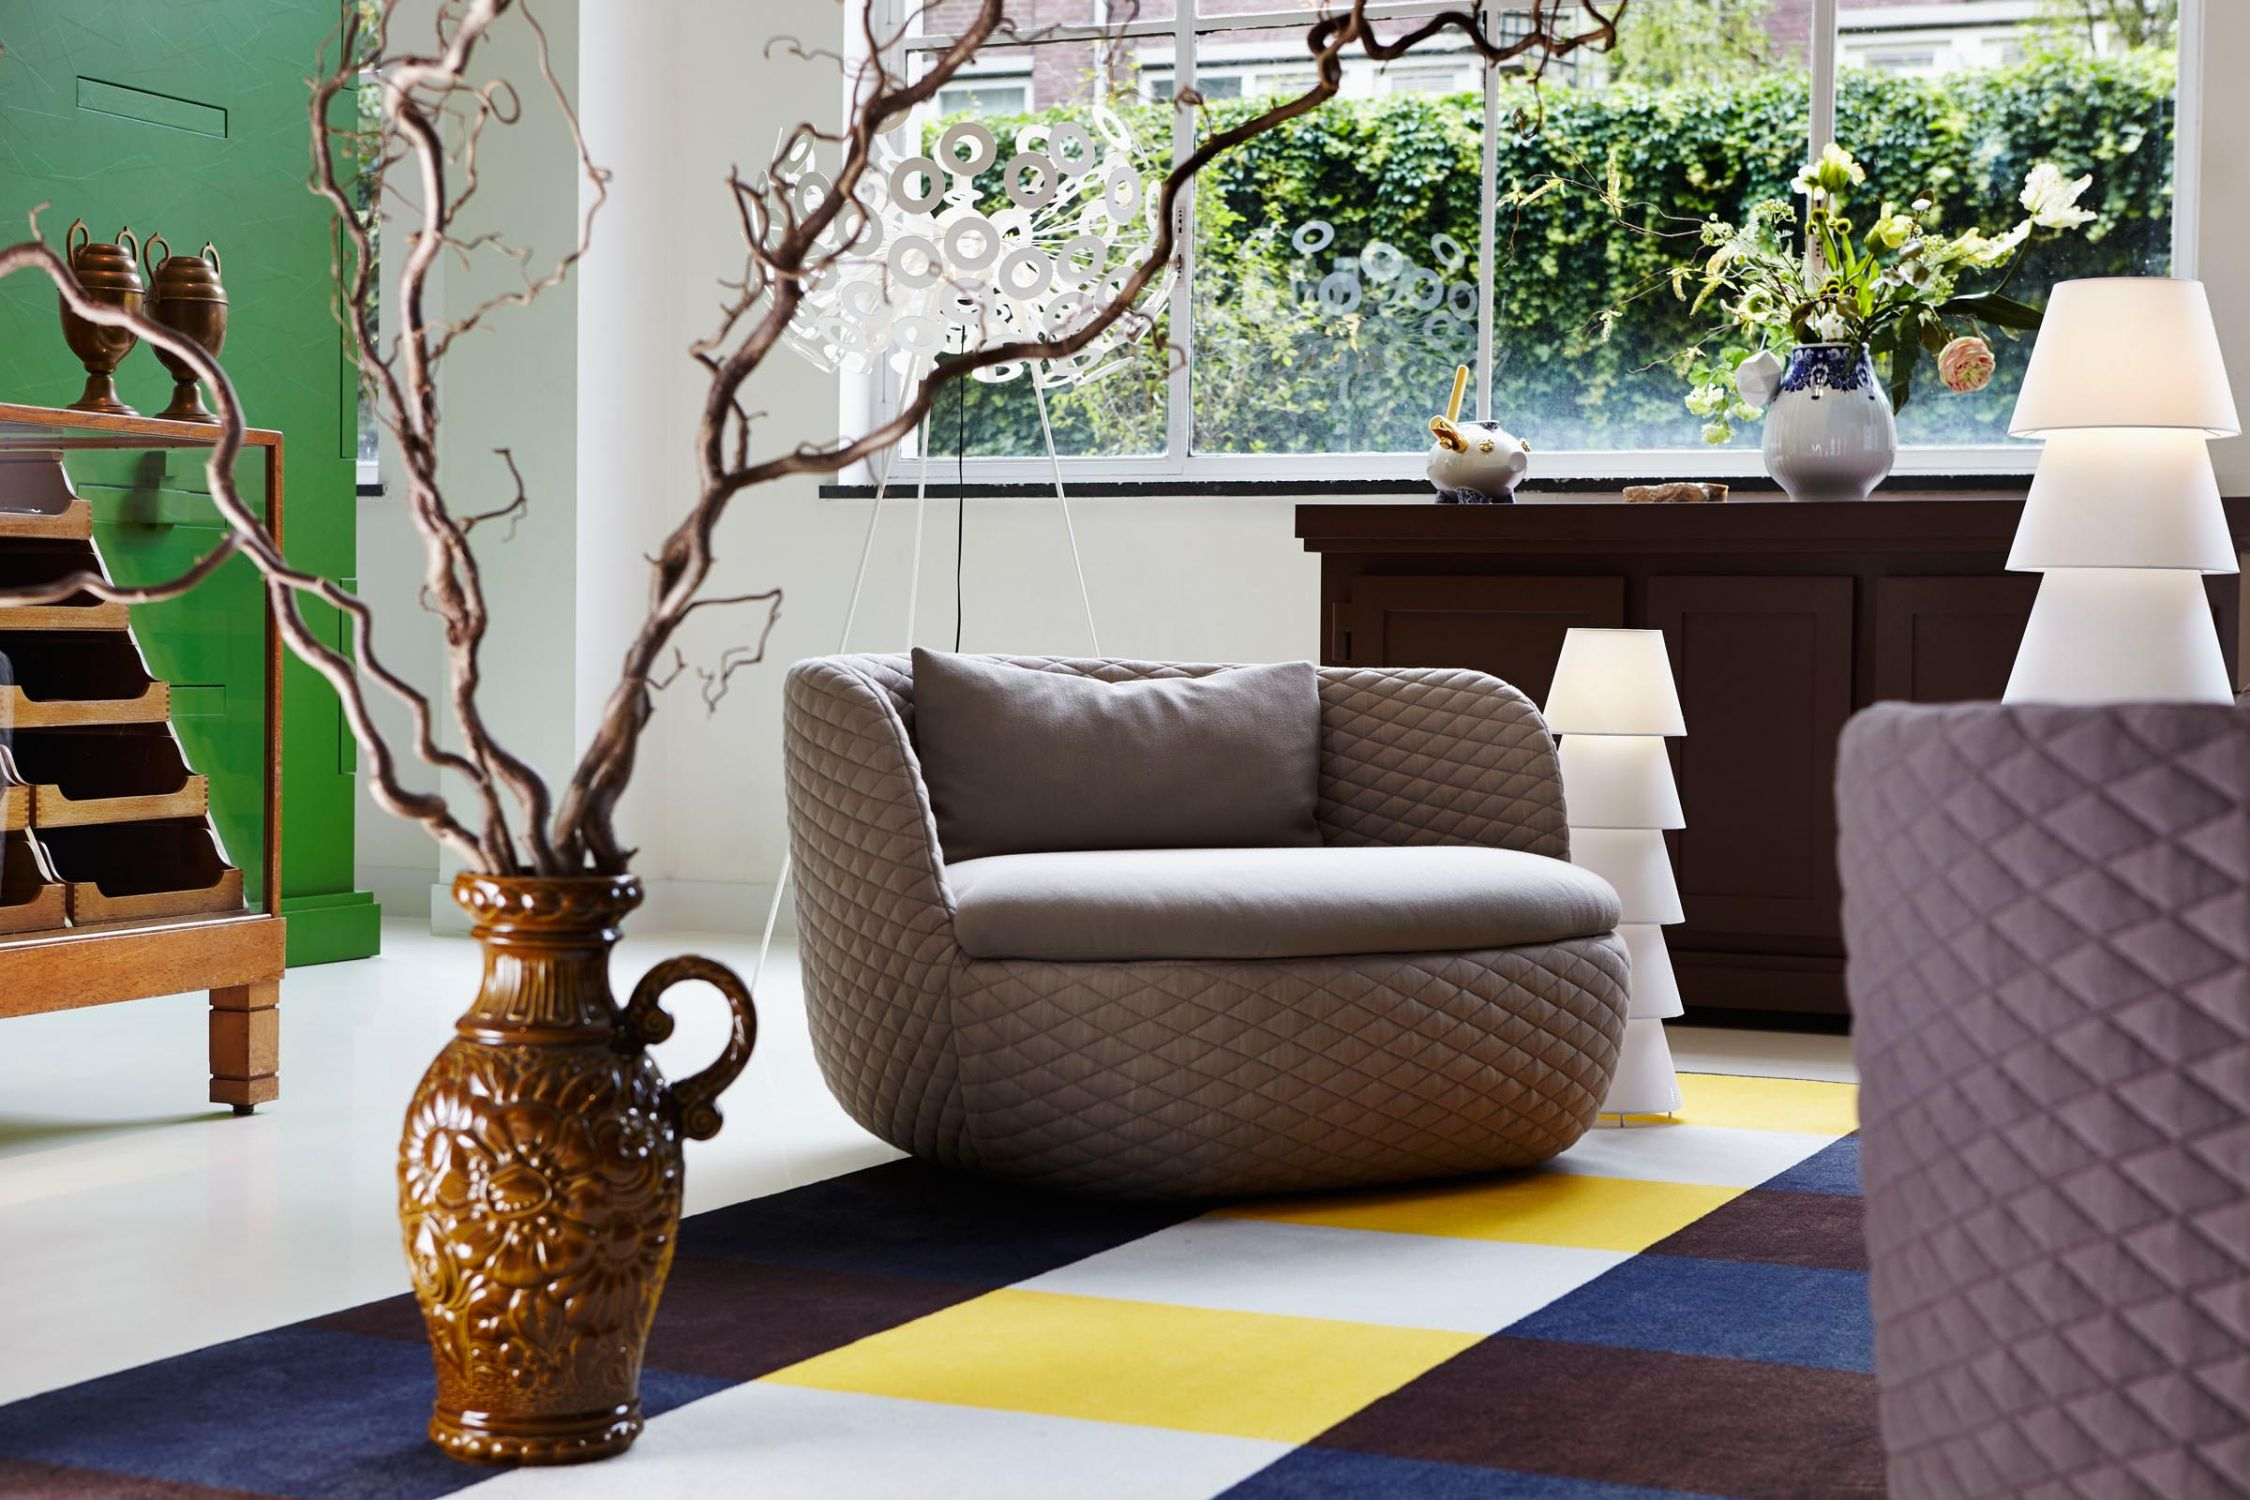 Moooi's Bart Sofa & Armchair by Moooi Works and Bart Schilder